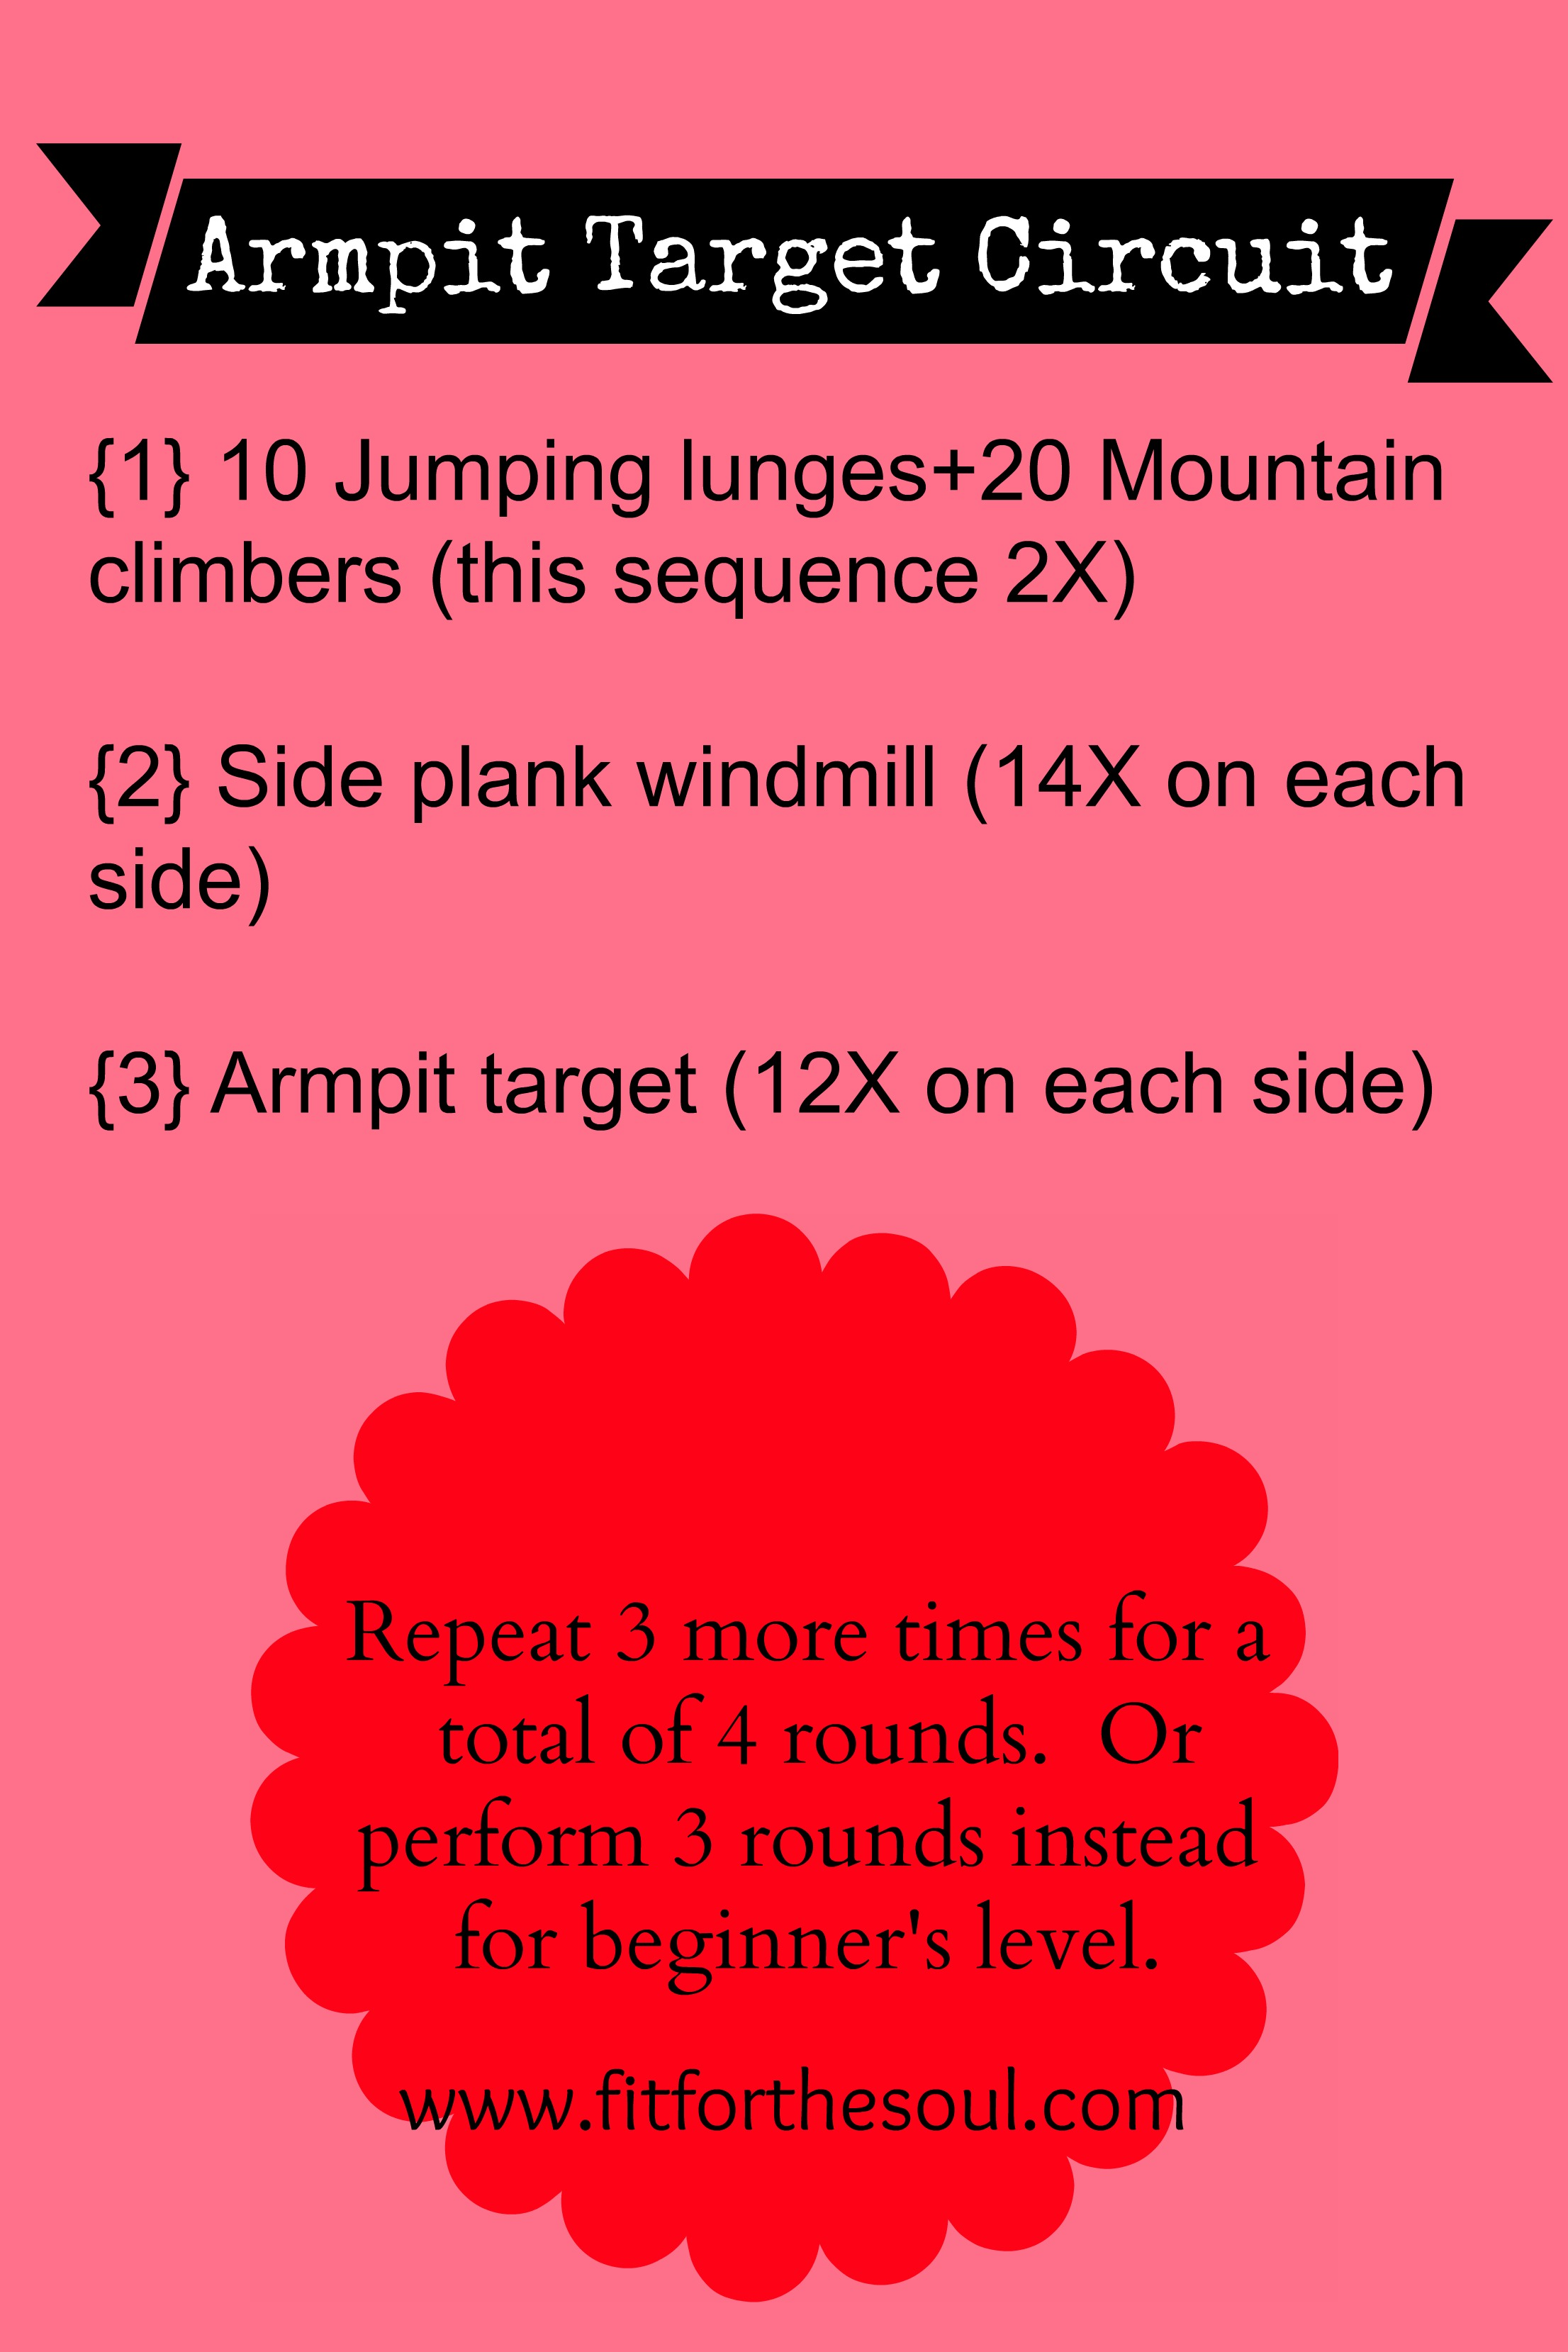 Banish brat fat with this circuit